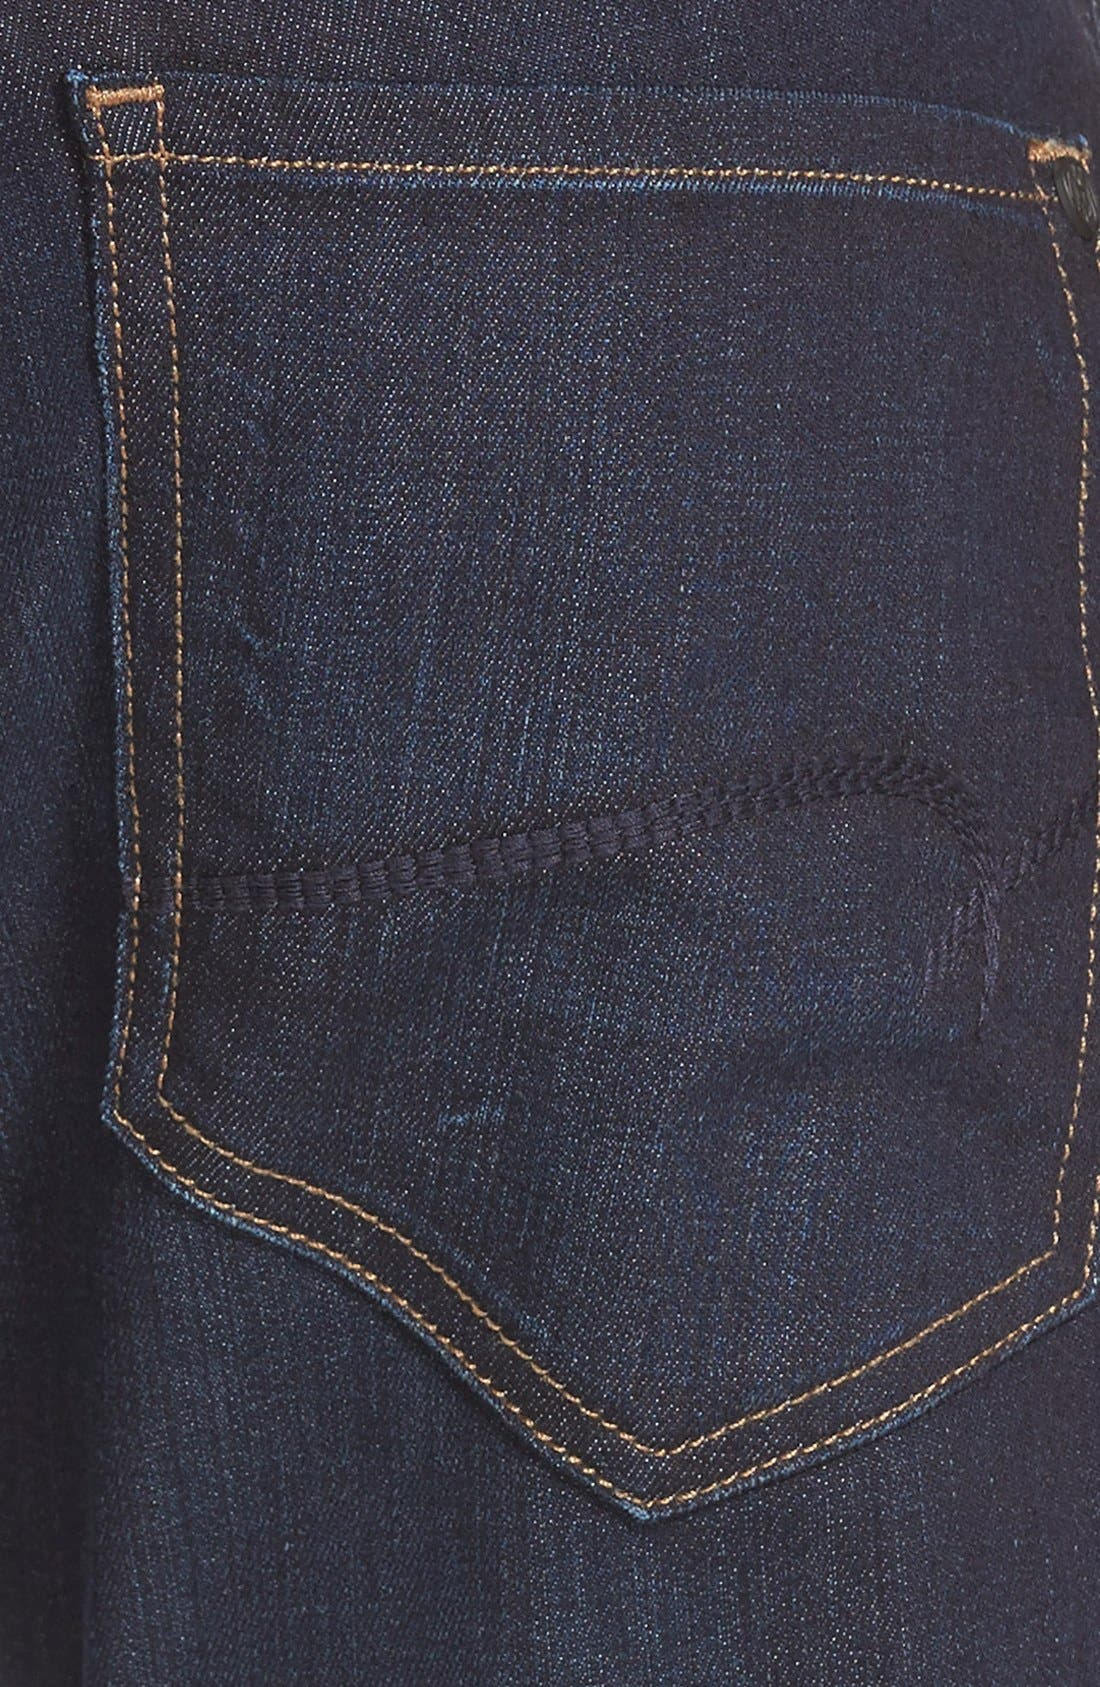 'Jake' Skinny Fit Jeans,                             Alternate thumbnail 6, color,                             RINSE BRUSHED WILLIAMSBURG